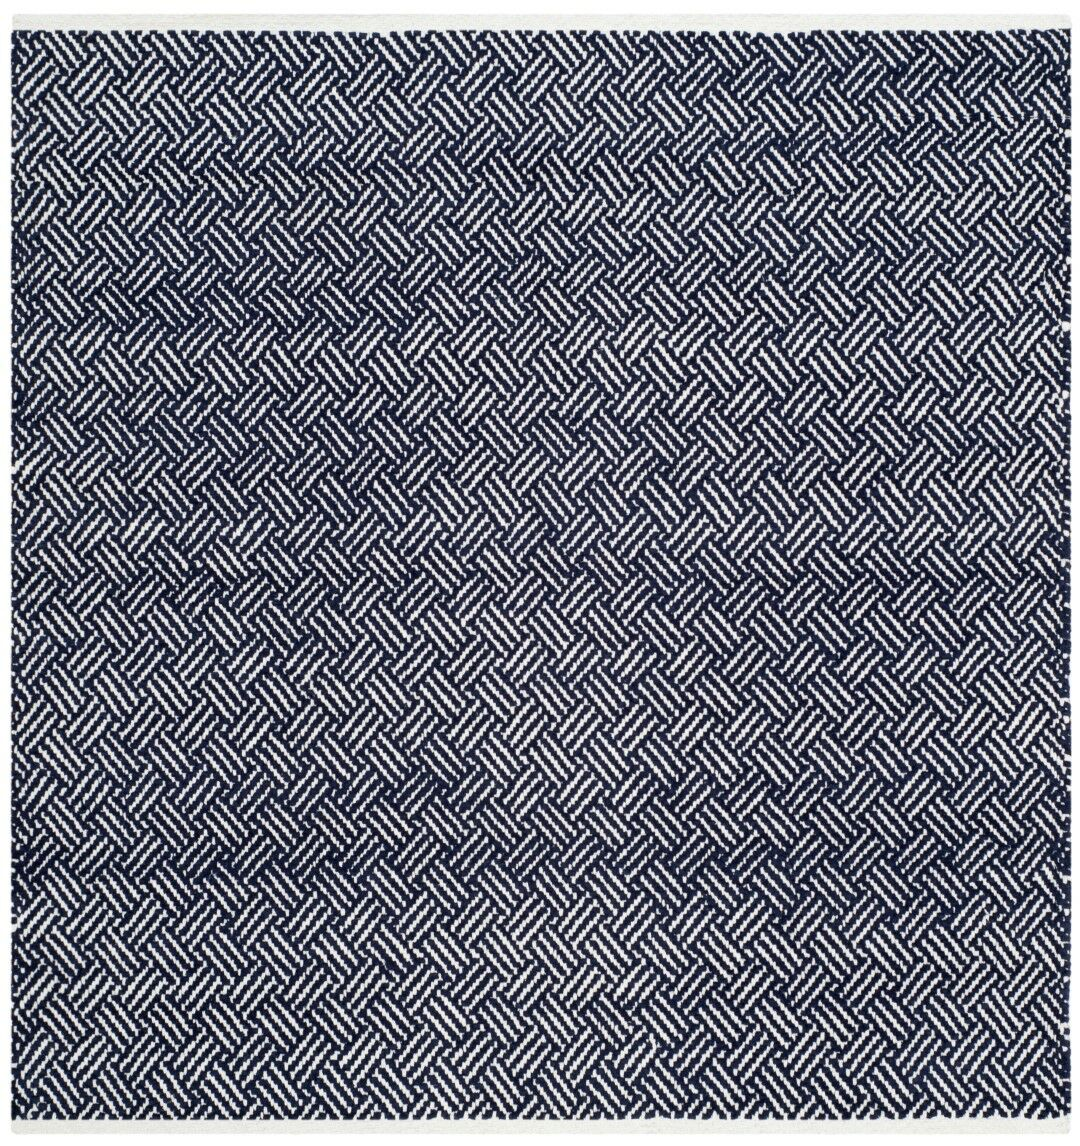 Boston Hand-Woven Navy Area Rug Rug Size: Square 4'